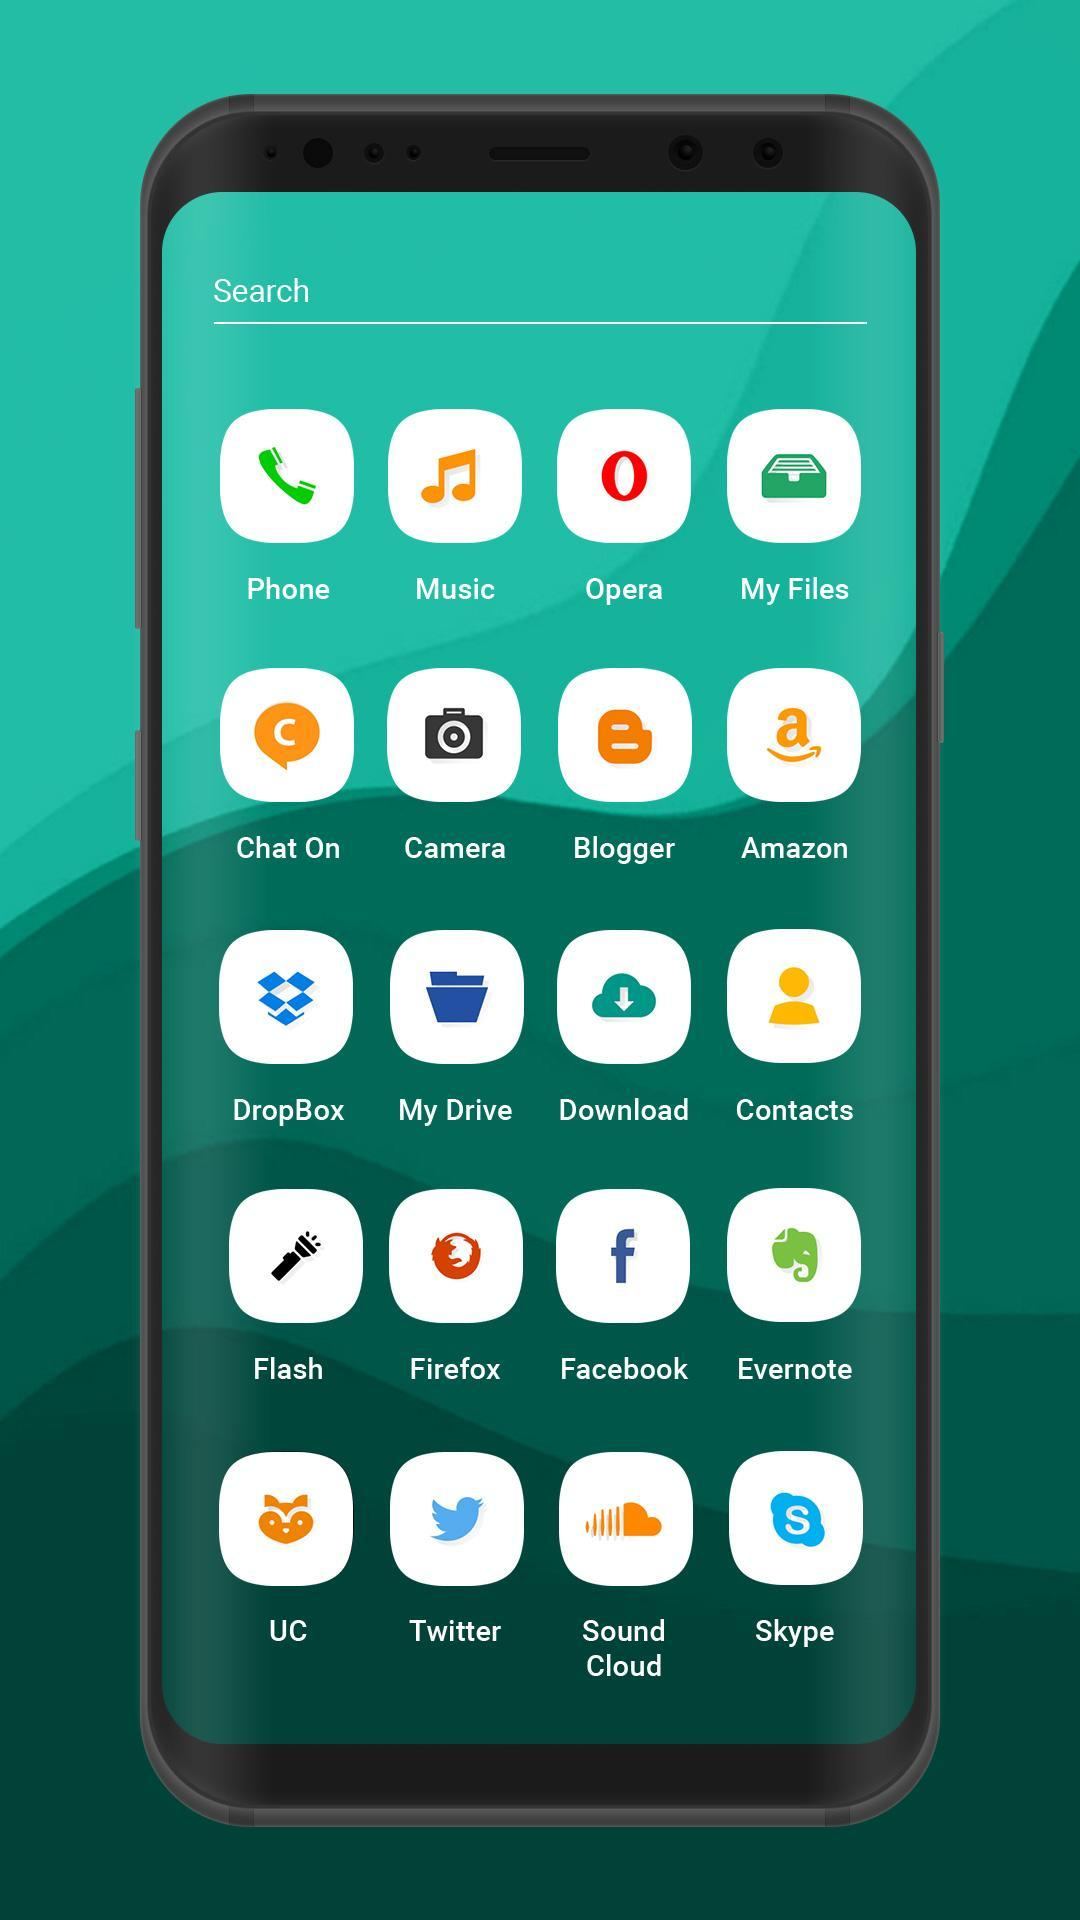 Xperia Launcher Apk For All Android